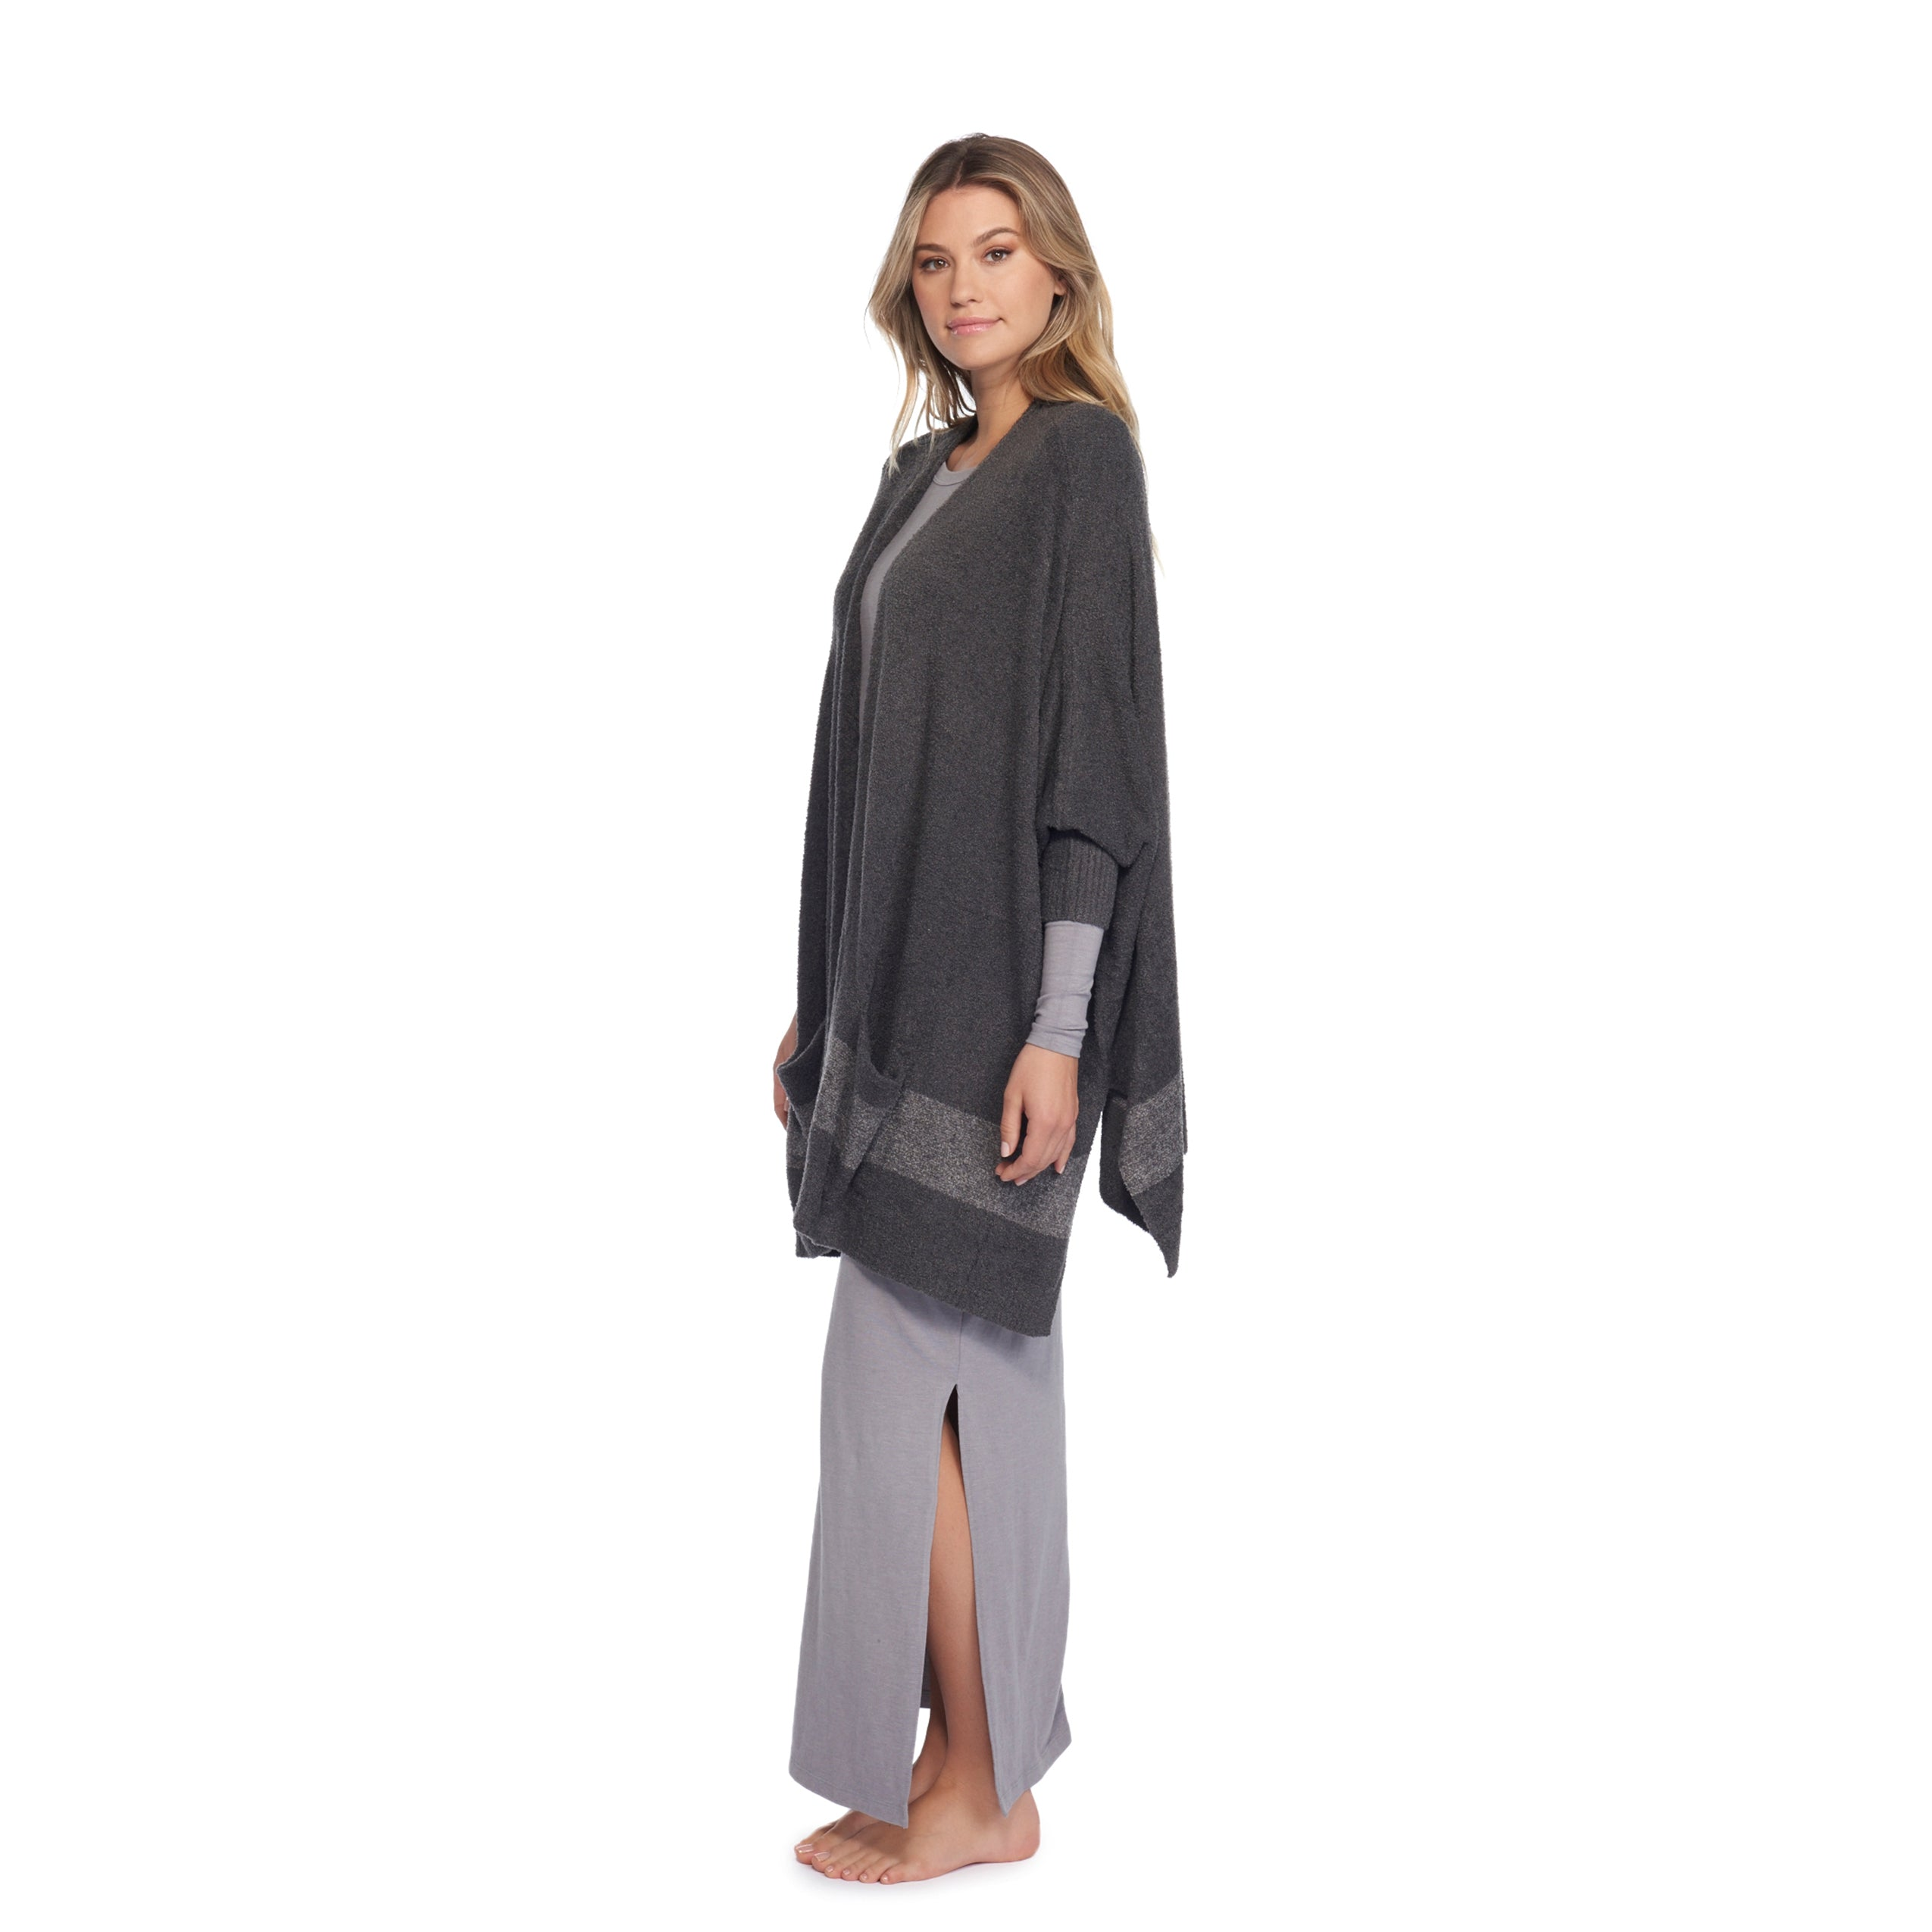 Cozychic Lite Cliffside Wrap